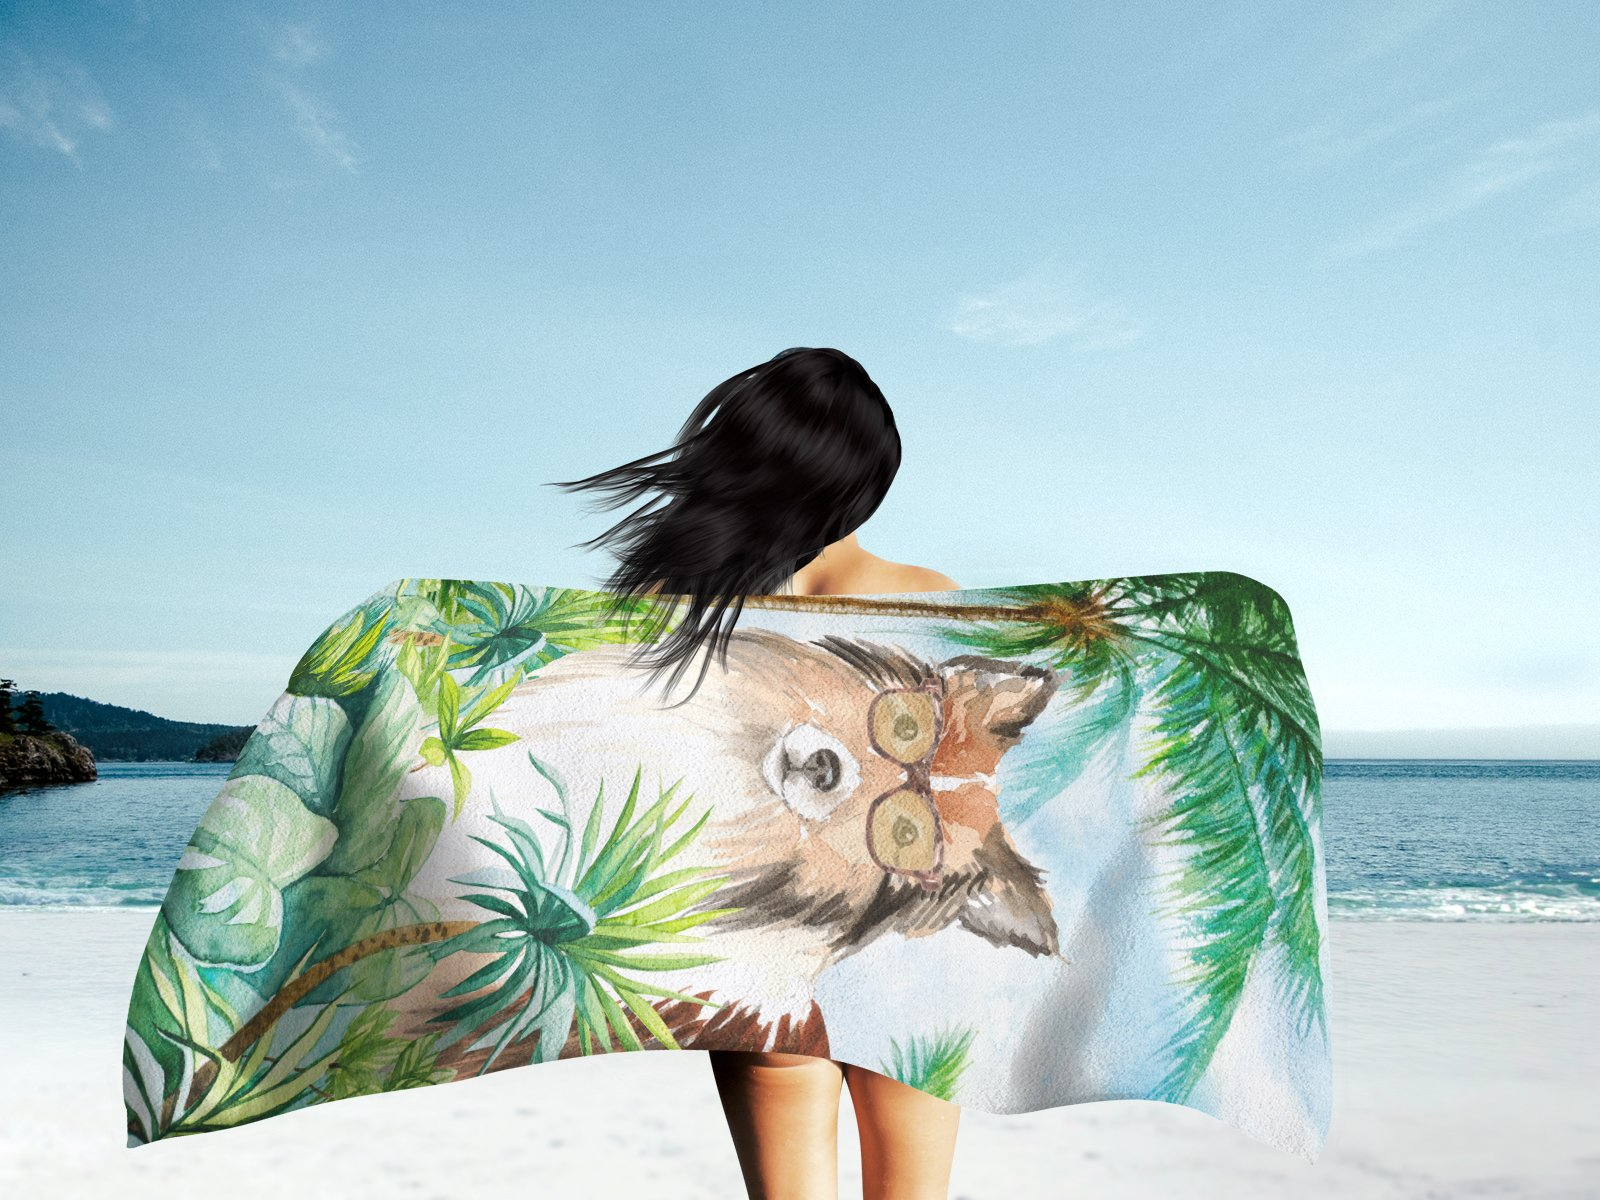 Sheltie Premium Beach Towel CK3000TWL3060 by Caroline's Treasures